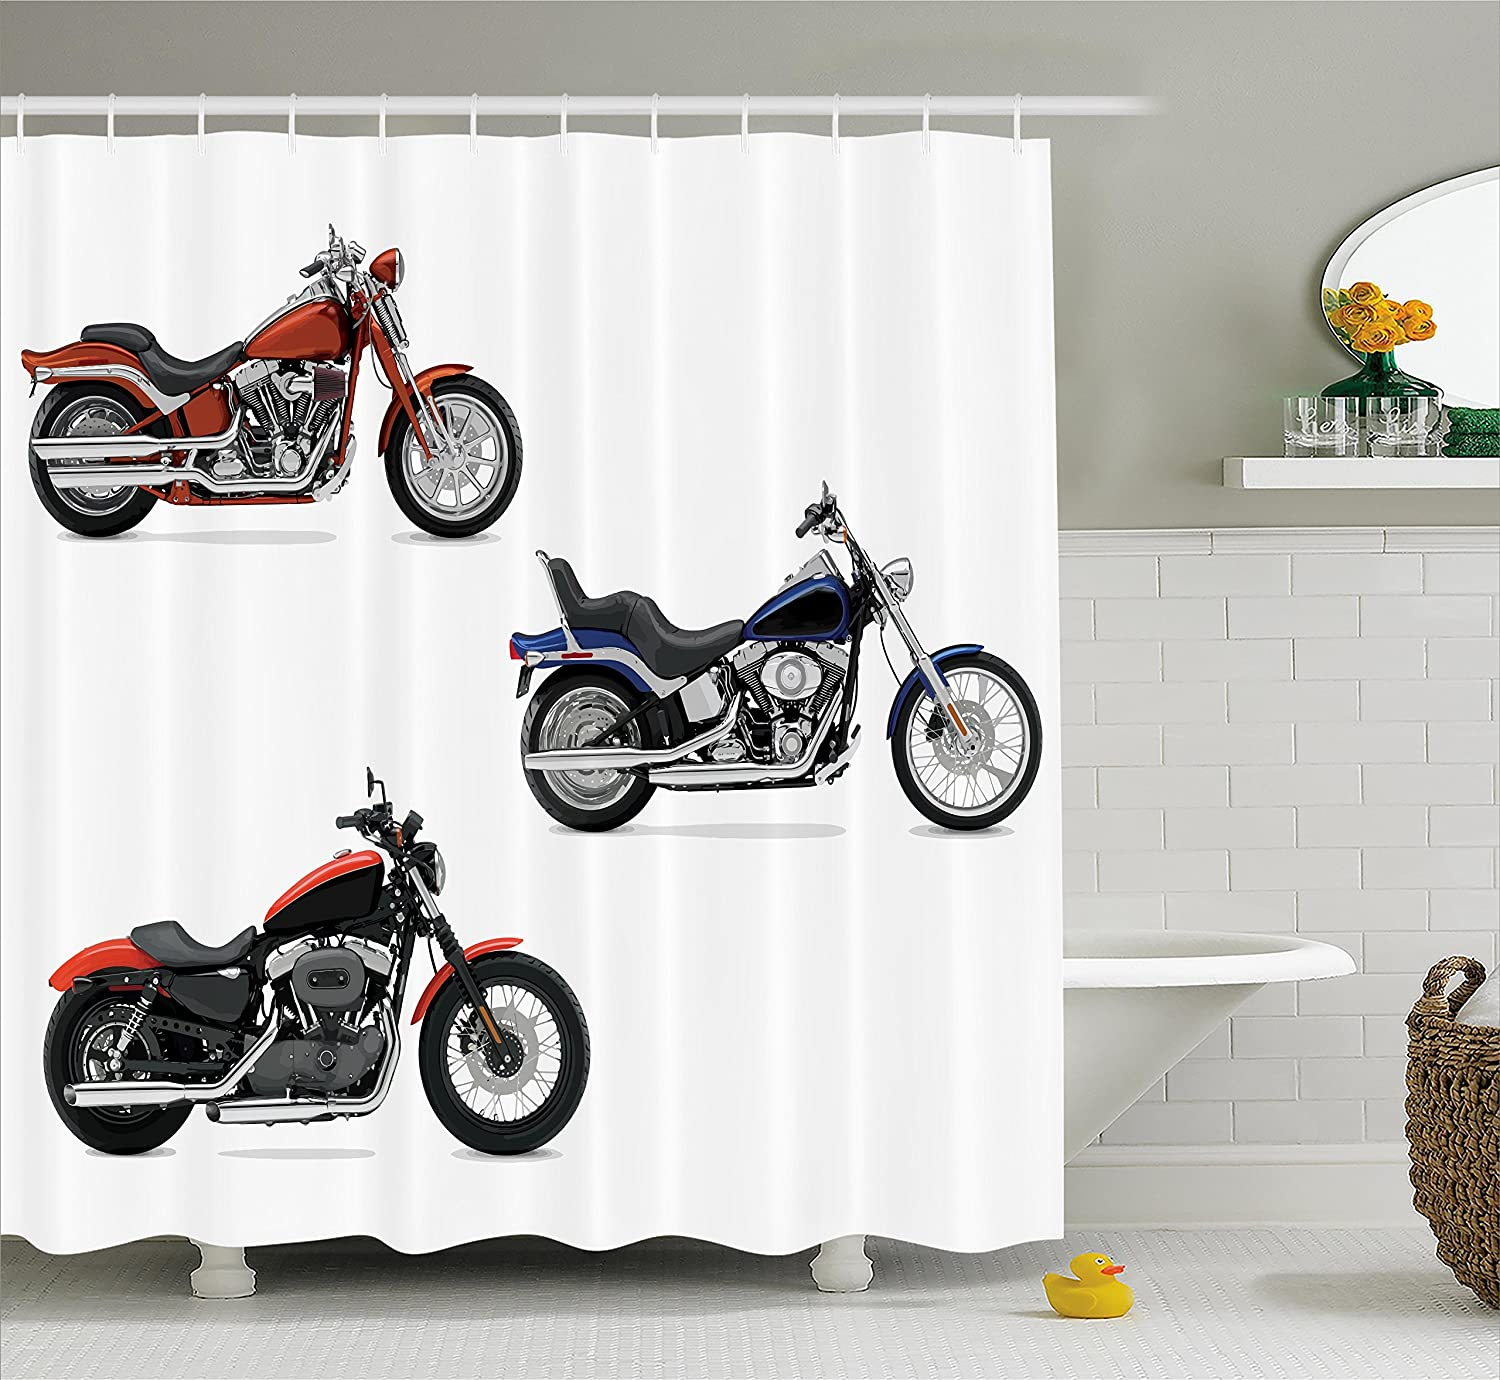 Motorcycle Decor Shower Curtain Set